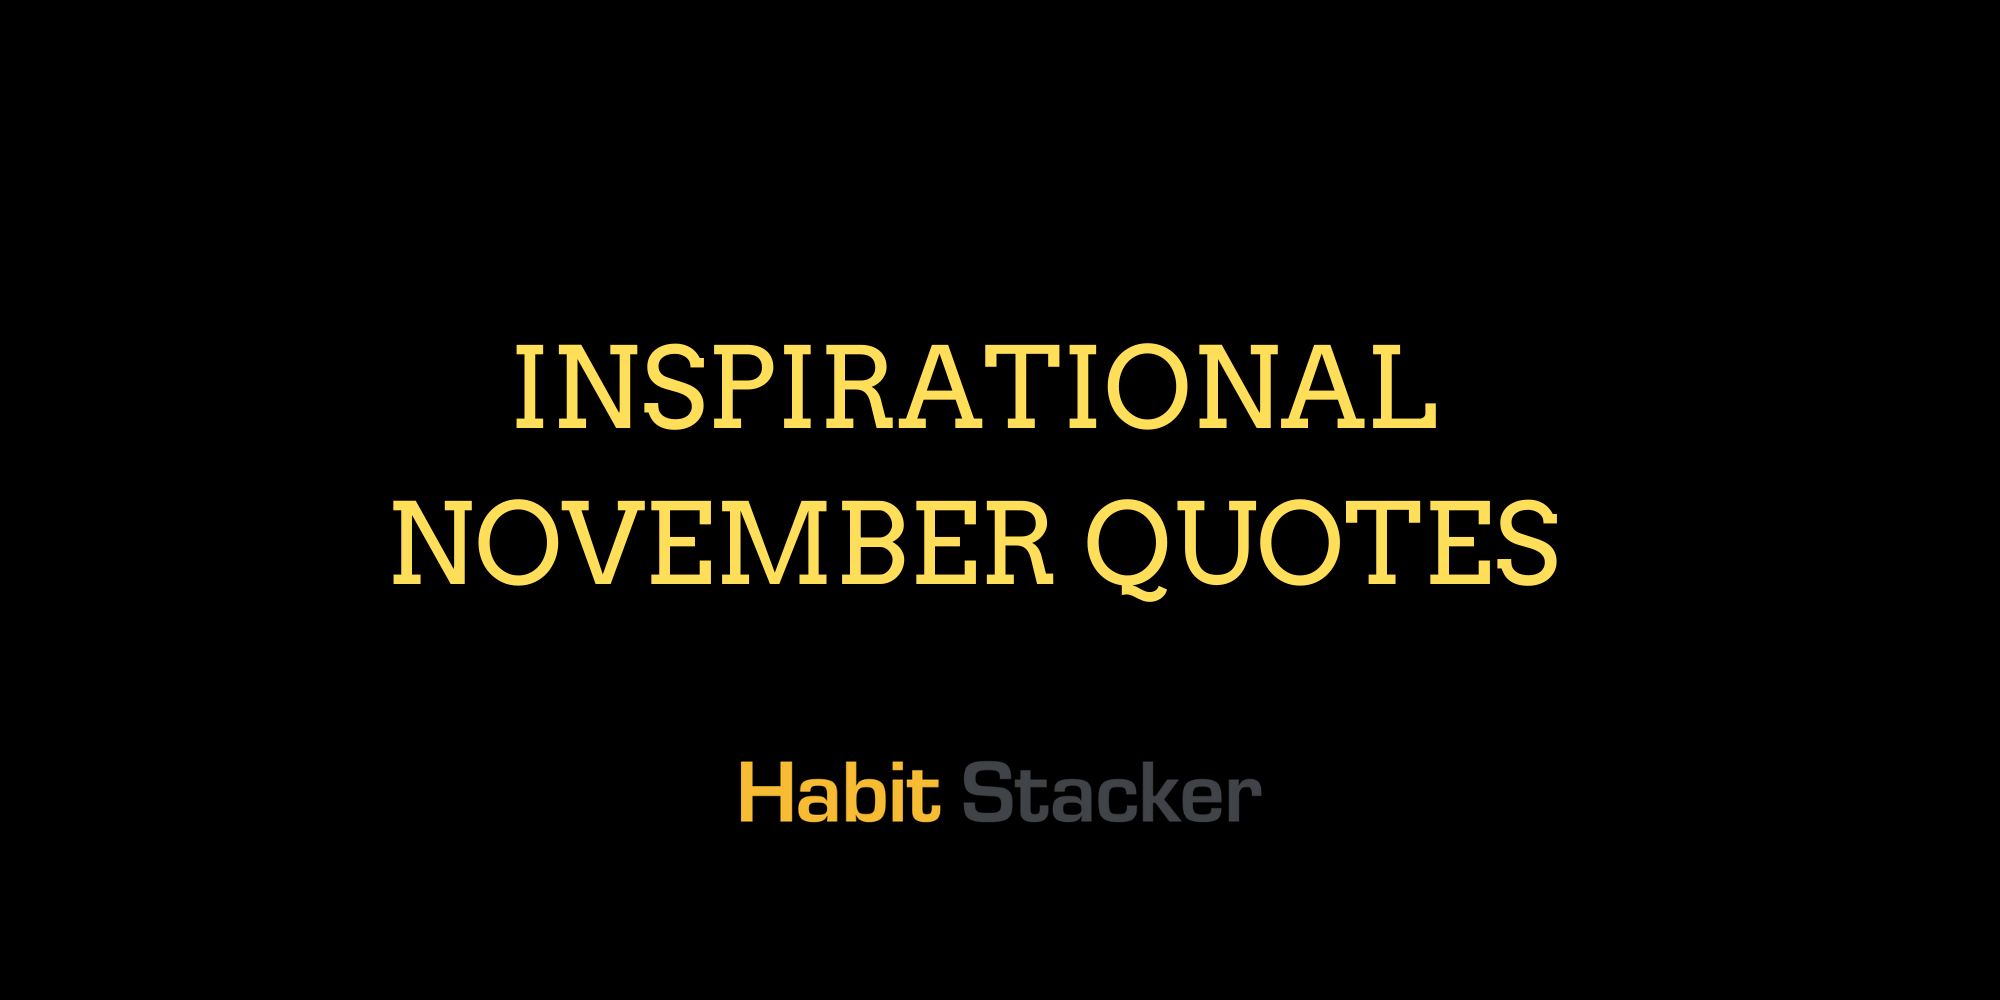 29 Inspirational November Quotes To Be Thankful For